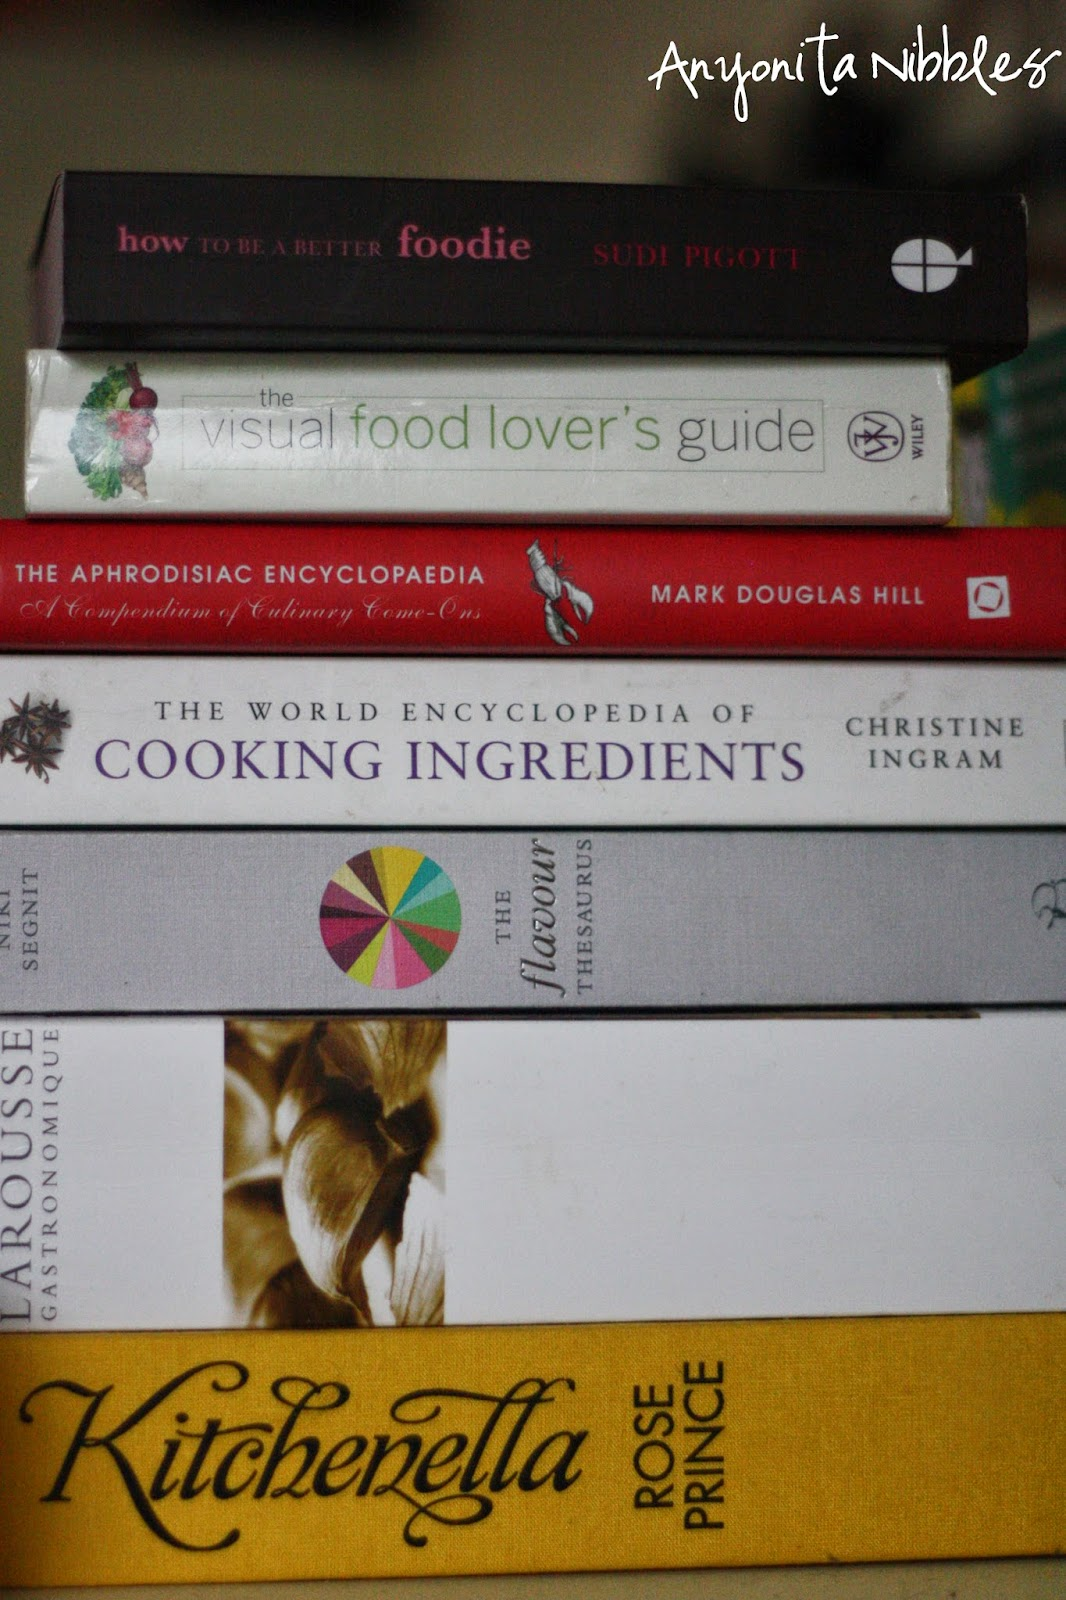 A collection of cookery reference books from Anyonita Nibbles